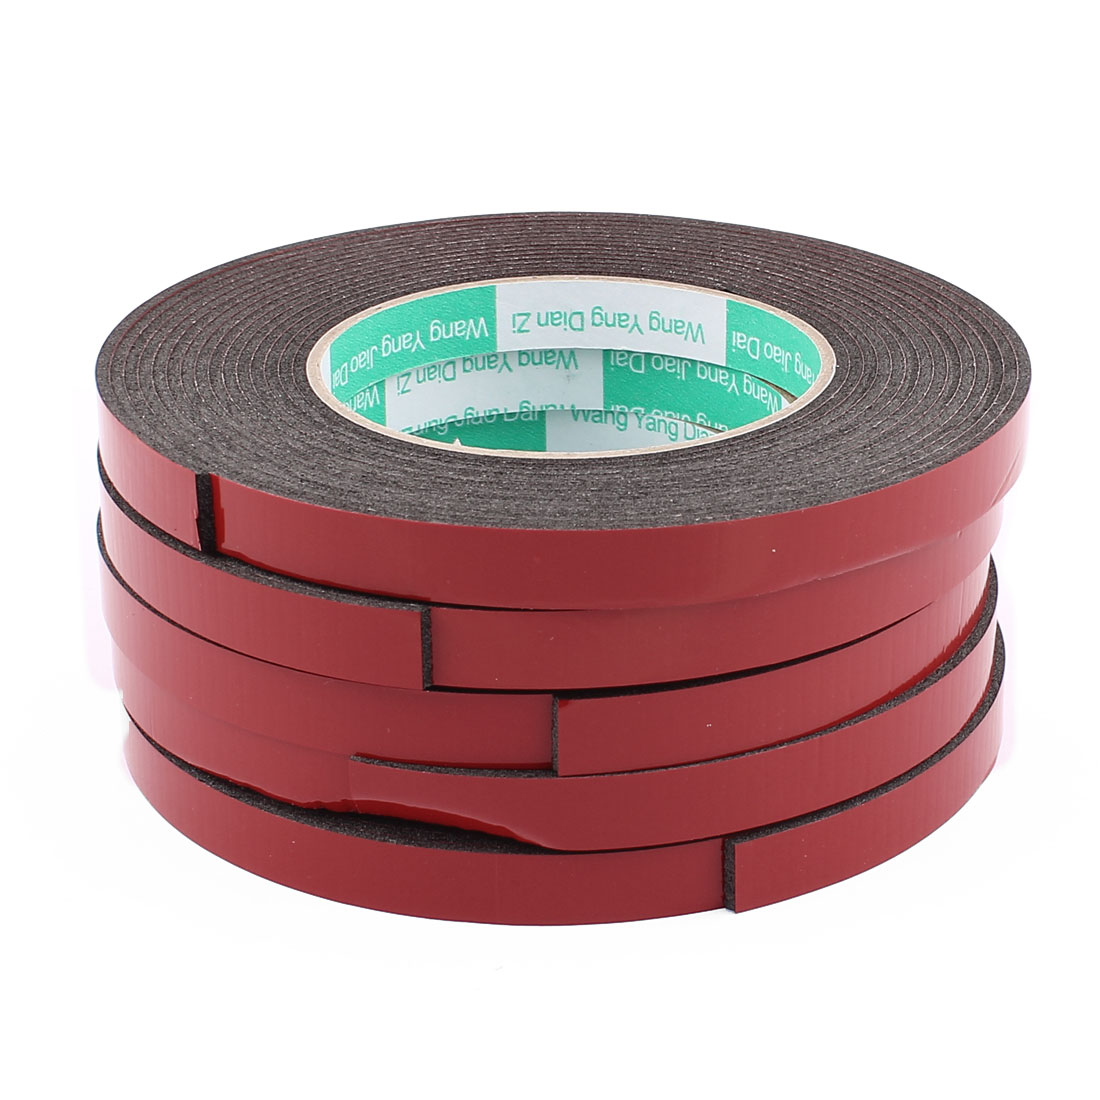 5 Pcs Black Strong Double Sided Adhesive Tape Sponge Tape 12MM Width 5M Long